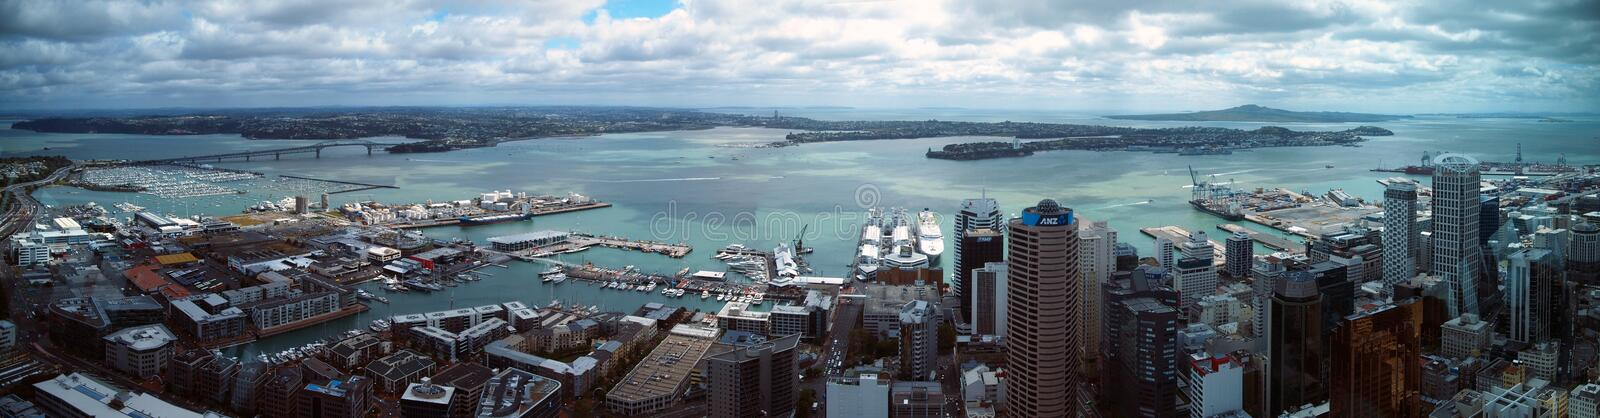 Auckland CBD images stock